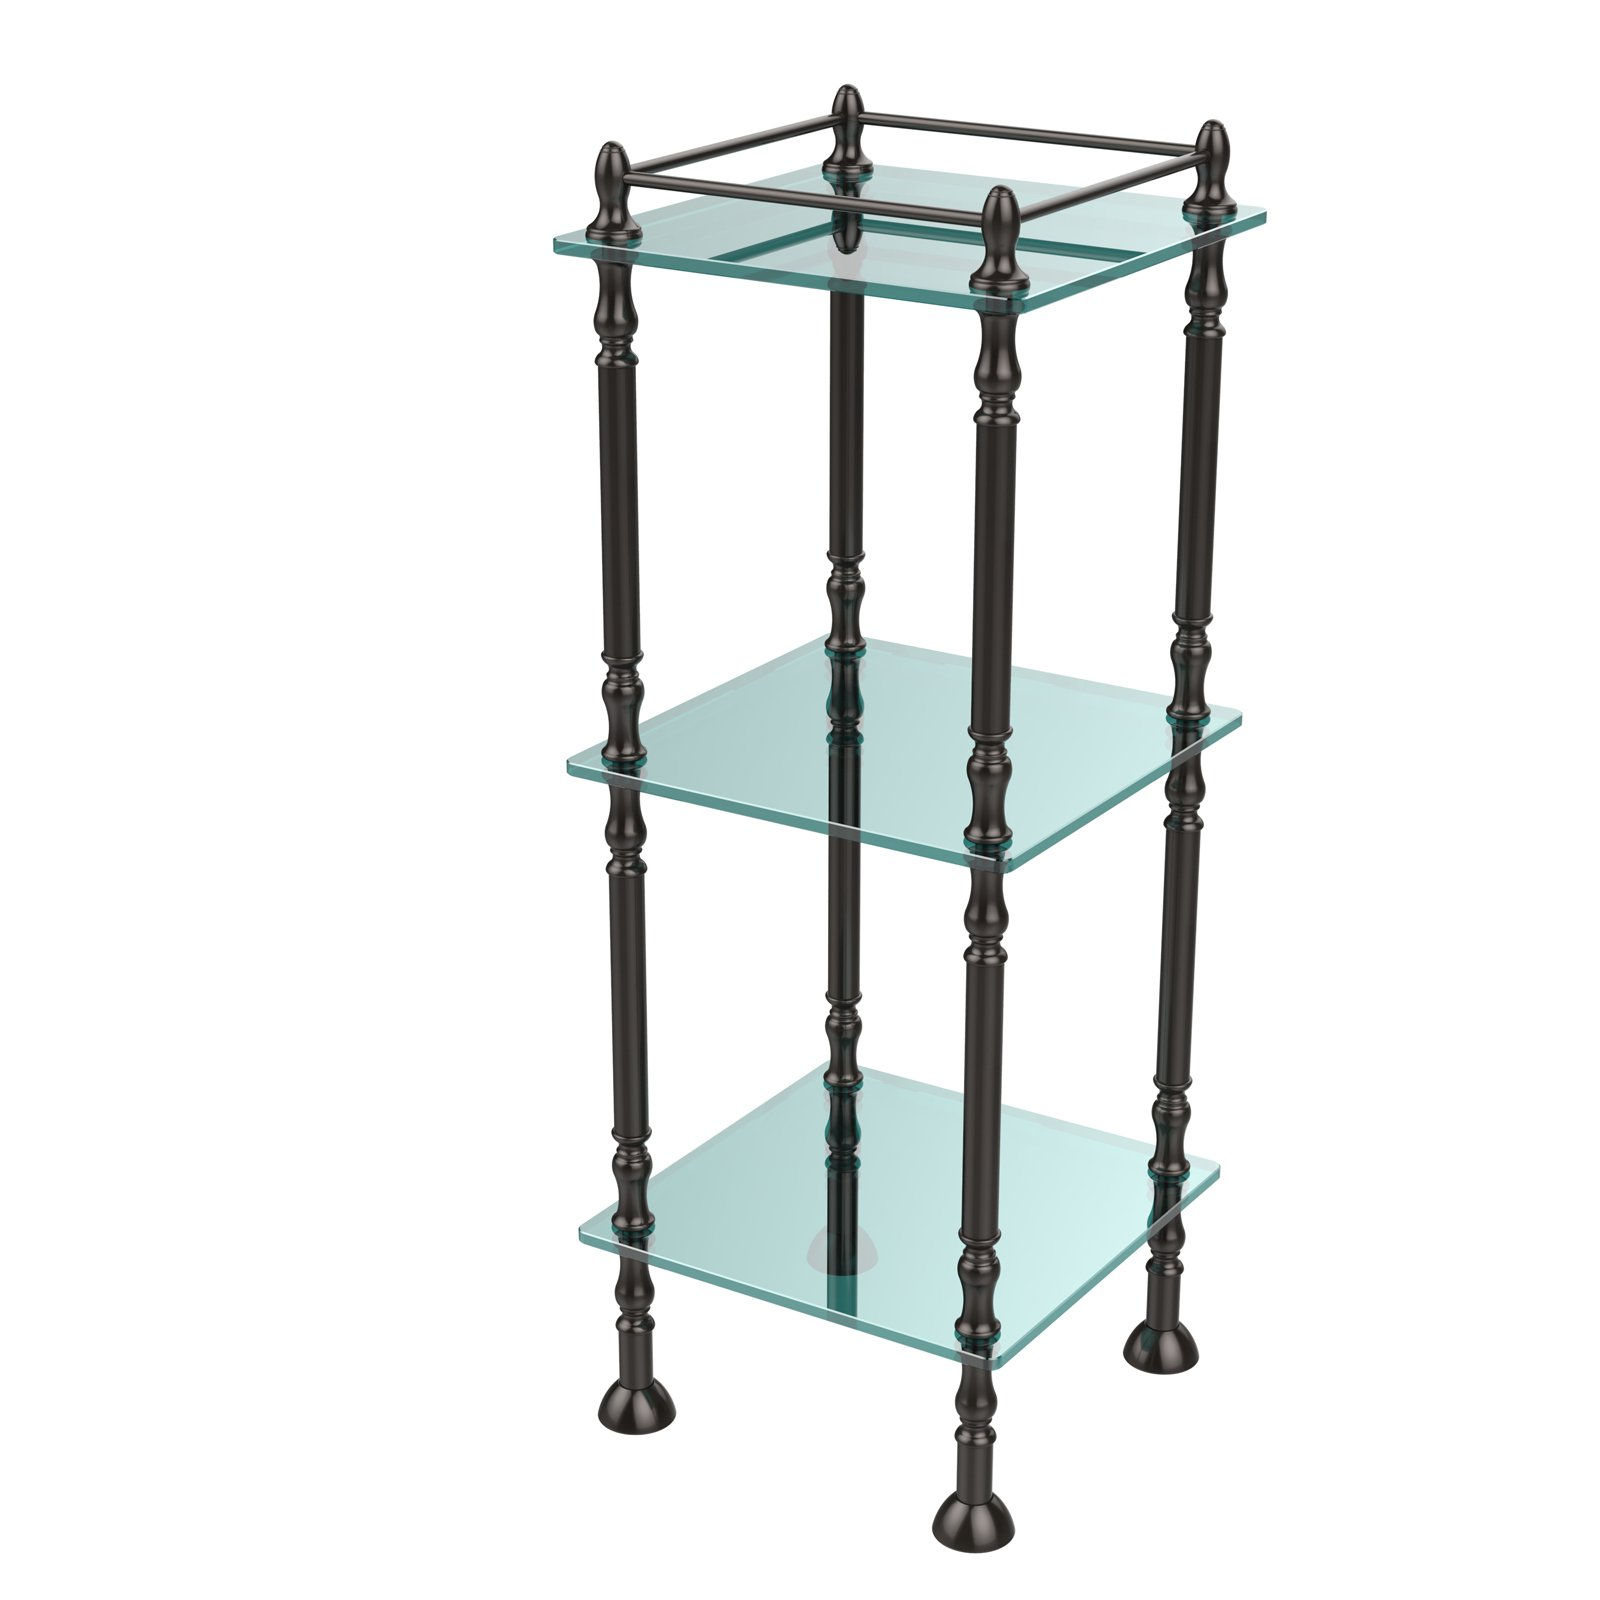 Three Tier Etagere with 14 Inch x 14 Inch Shelves